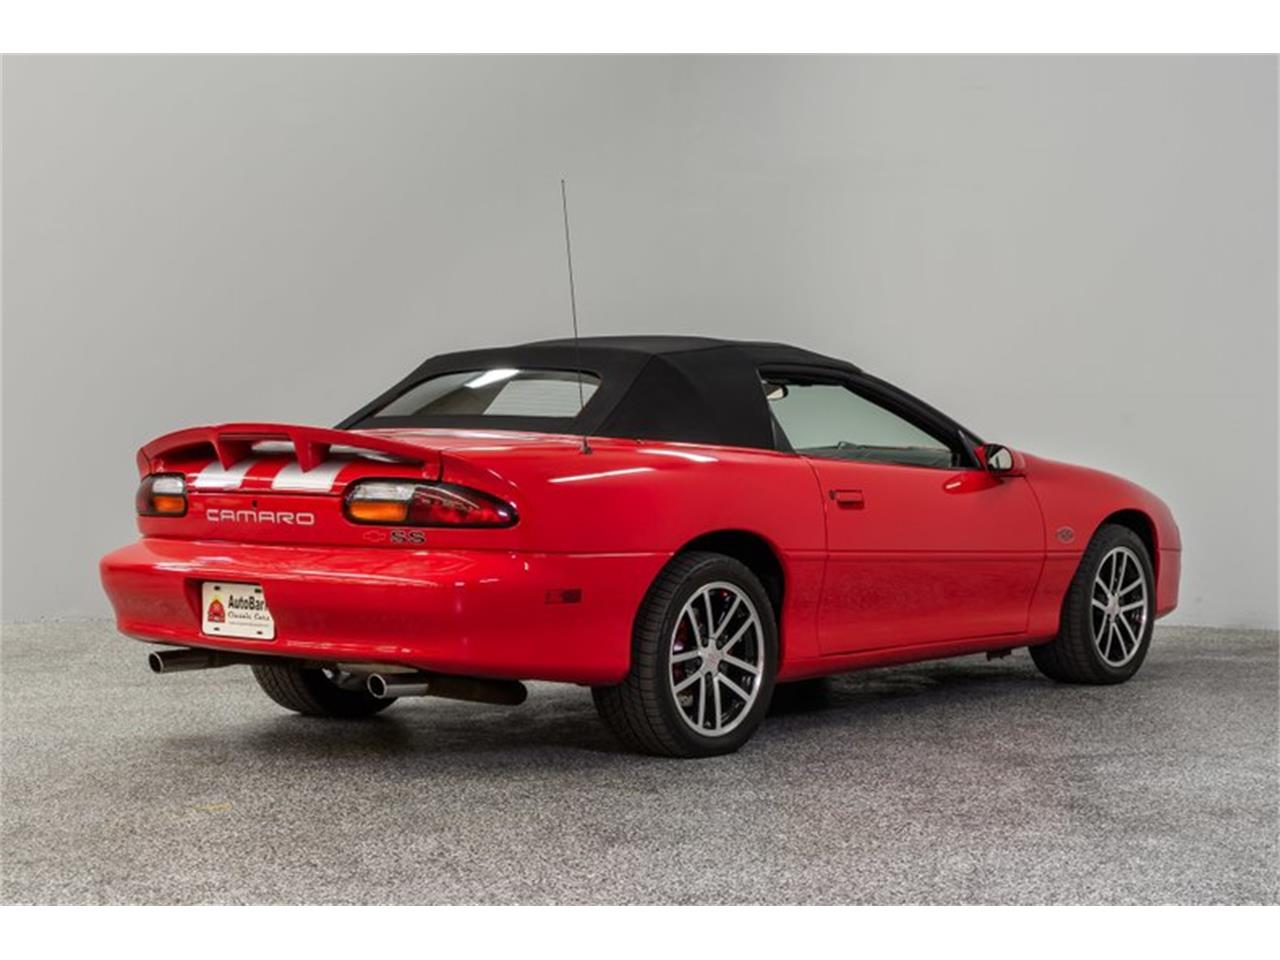 2002 Chevrolet Camaro for sale in Concord, NC – photo 8